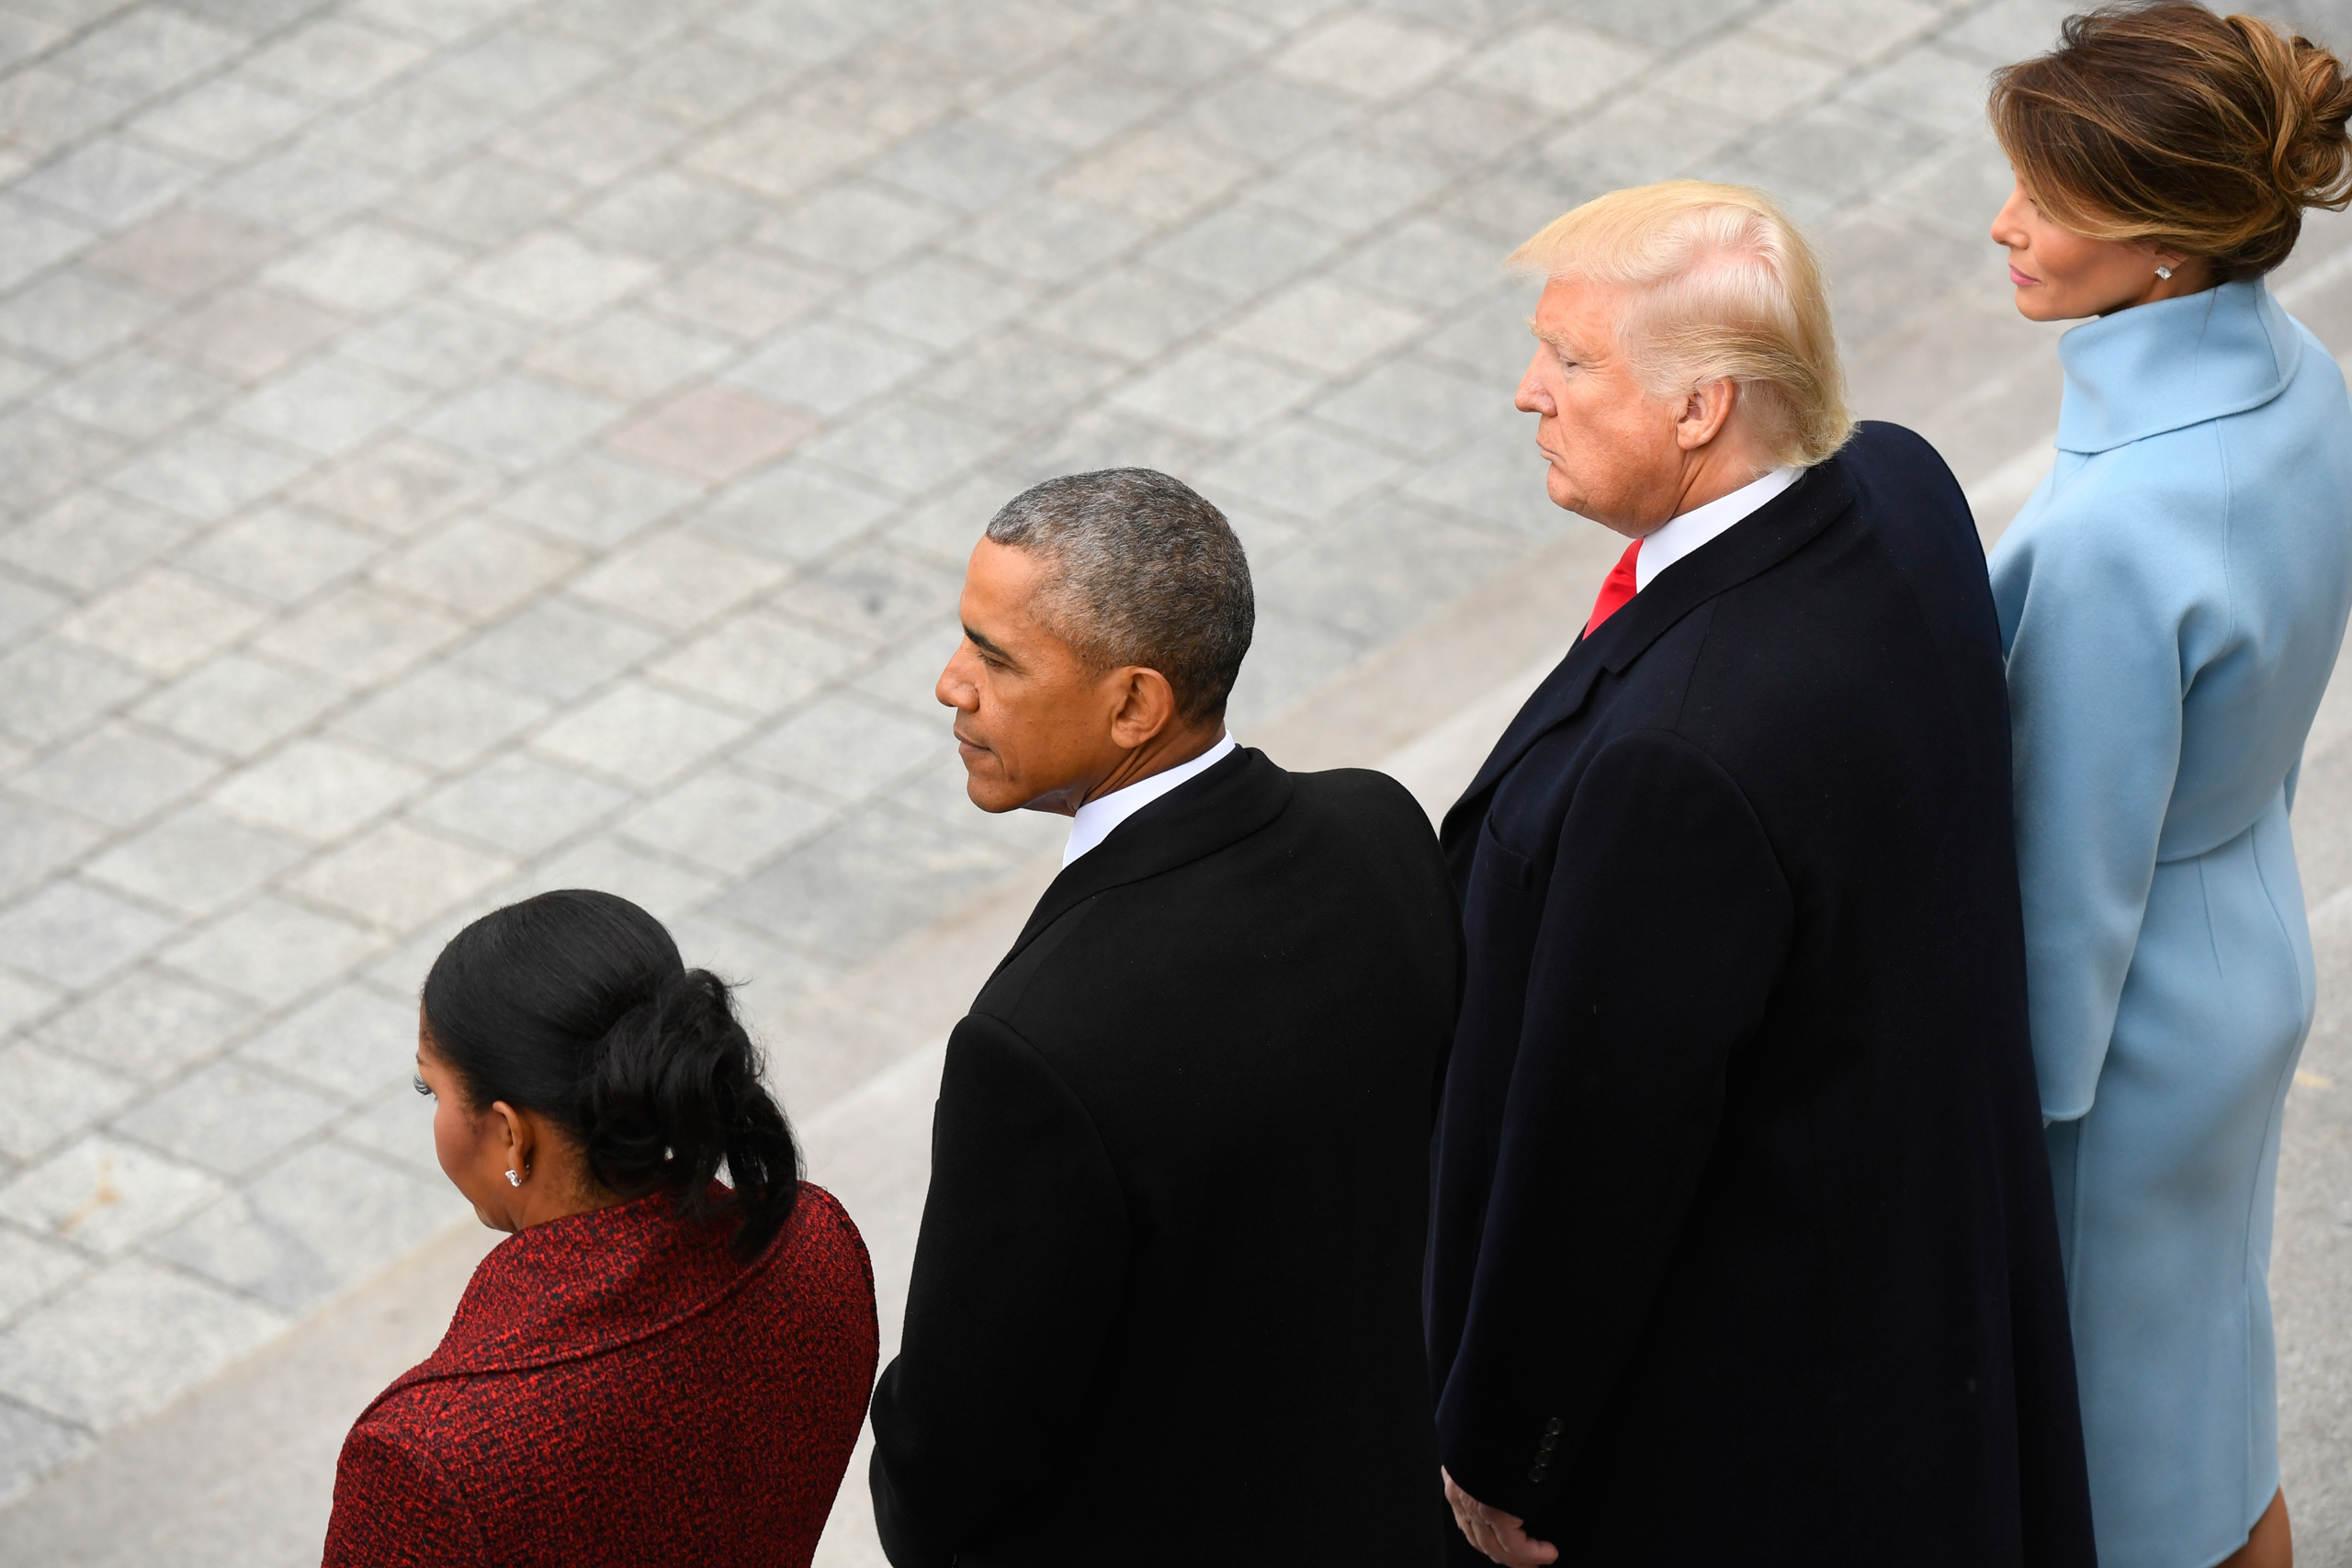 Former President Barack Obama and his wife Michelle Obama stand with President Donald Trump and his wife Melania Trump on the East front                      of the Capitol Hill in Washington on Jan. 20, 2017.